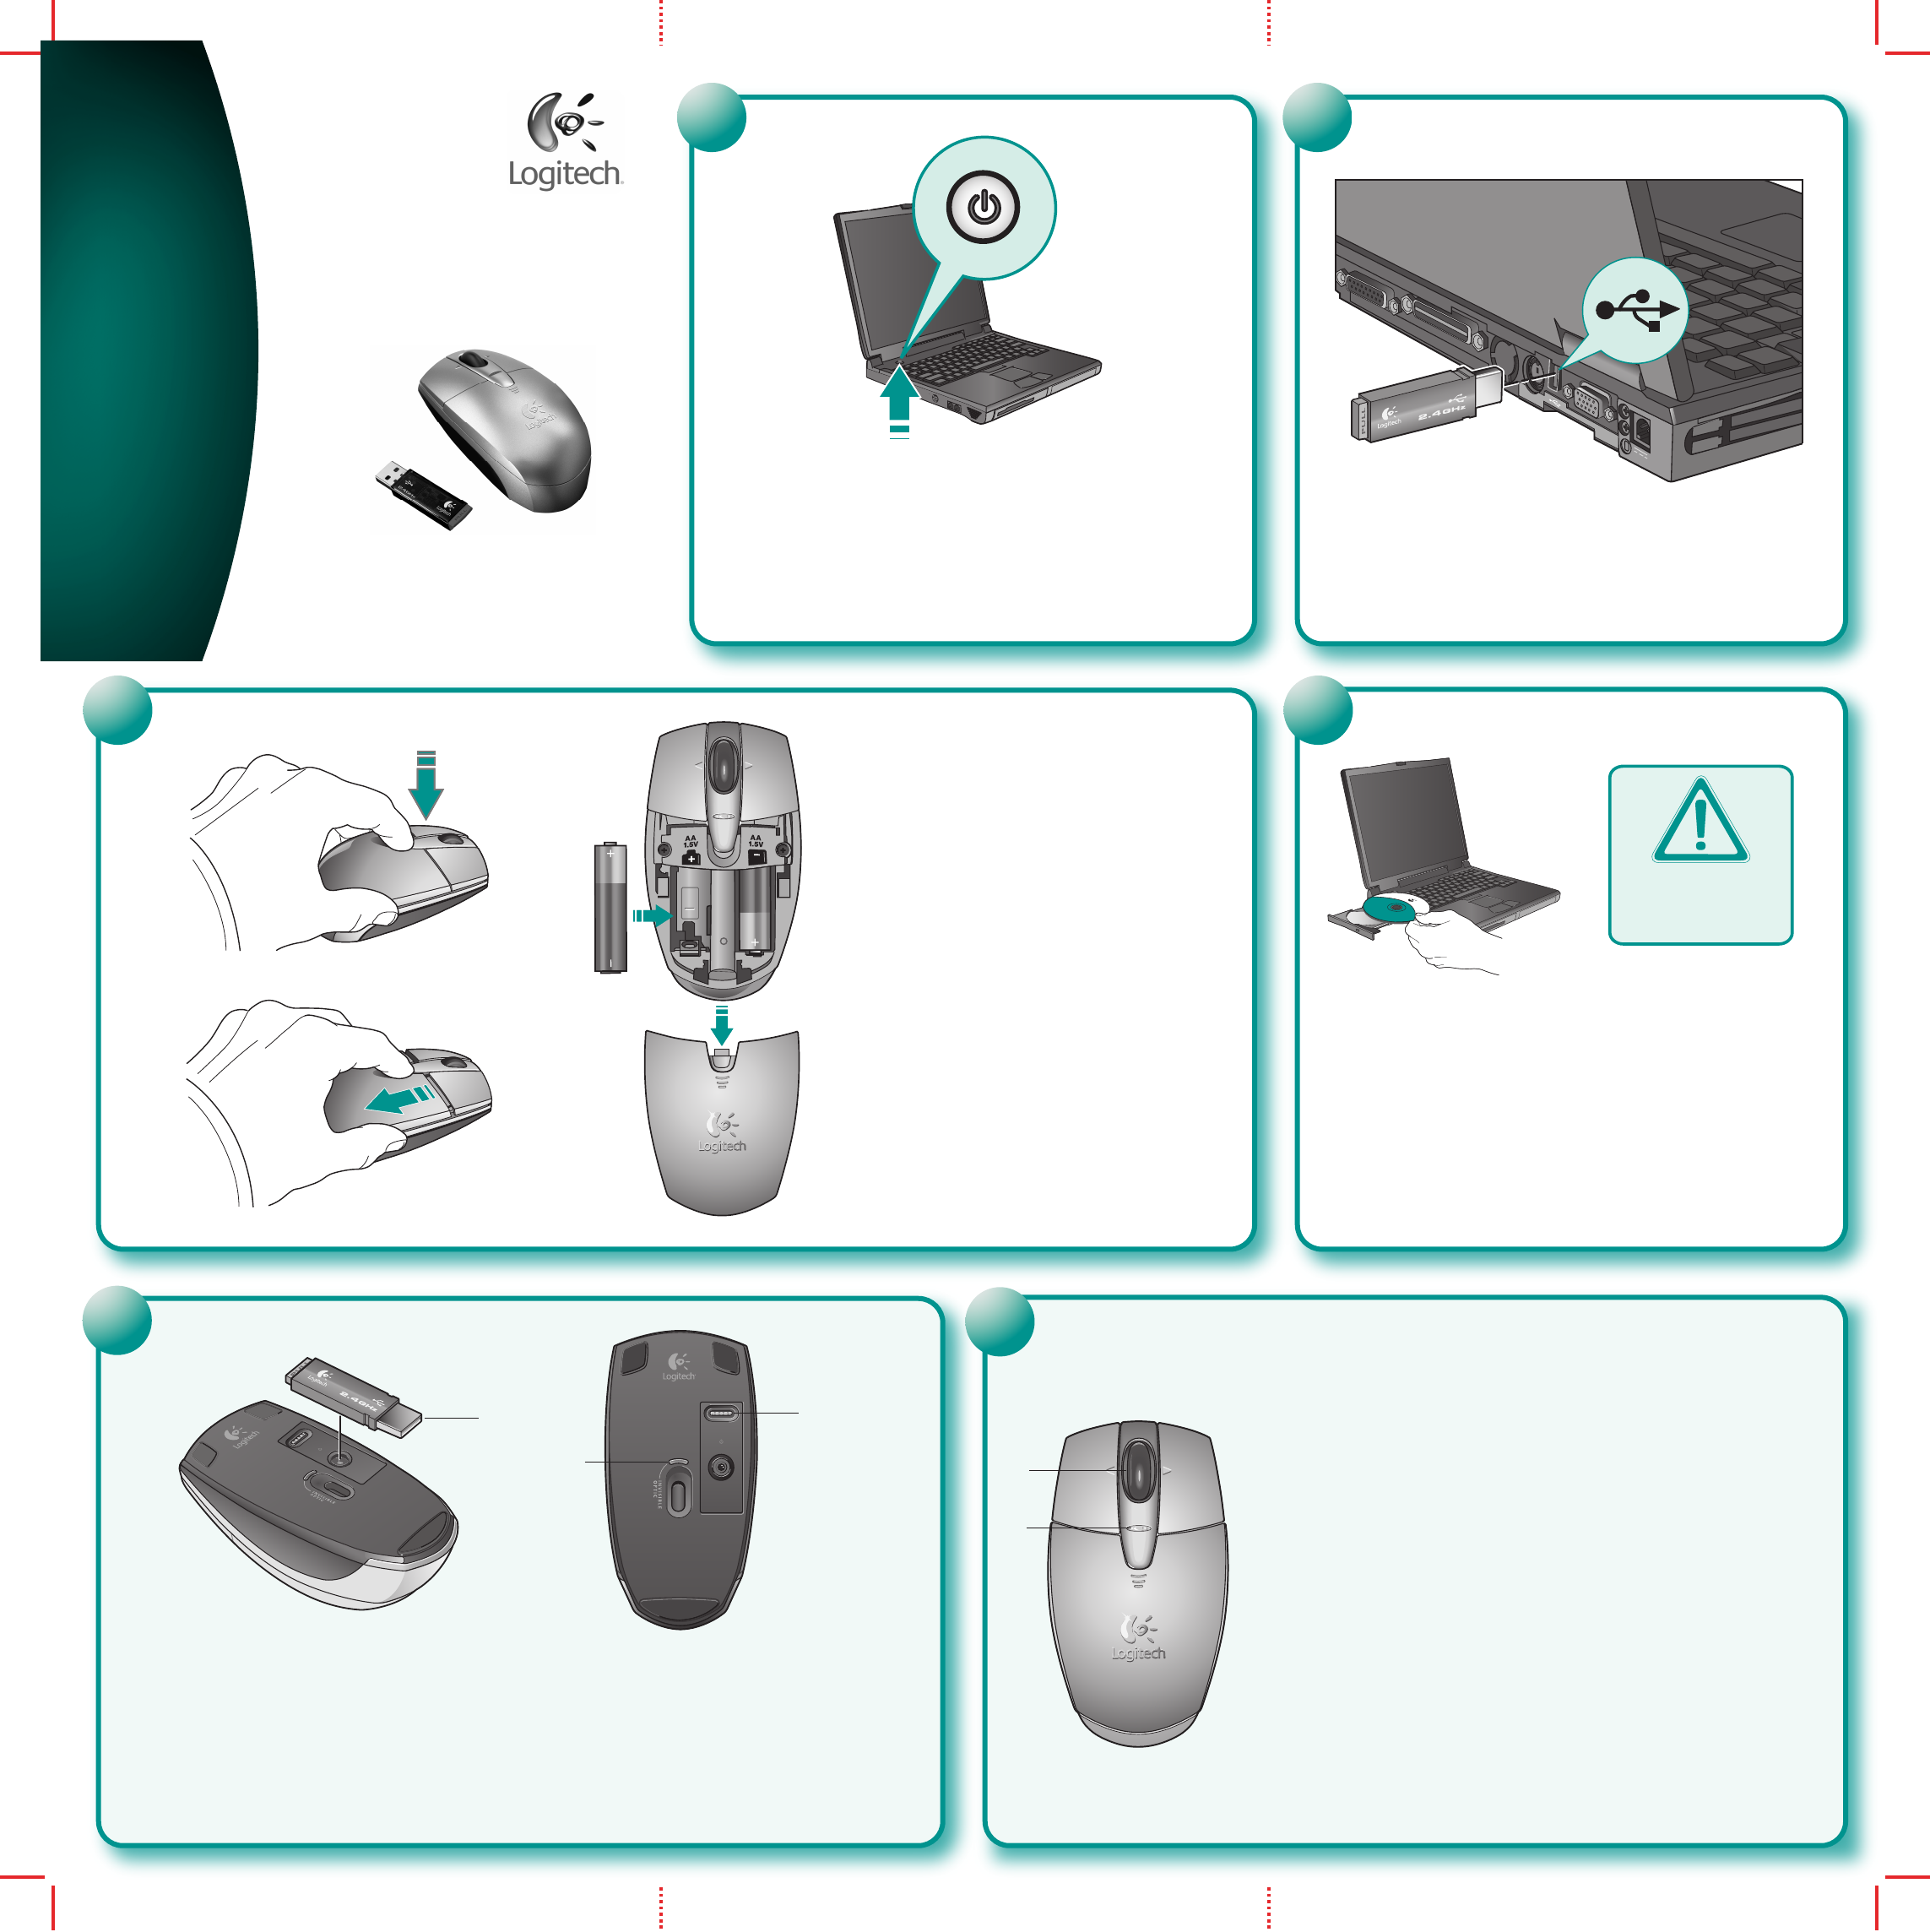 logitech cordless mouse and keyboard receiver instructions